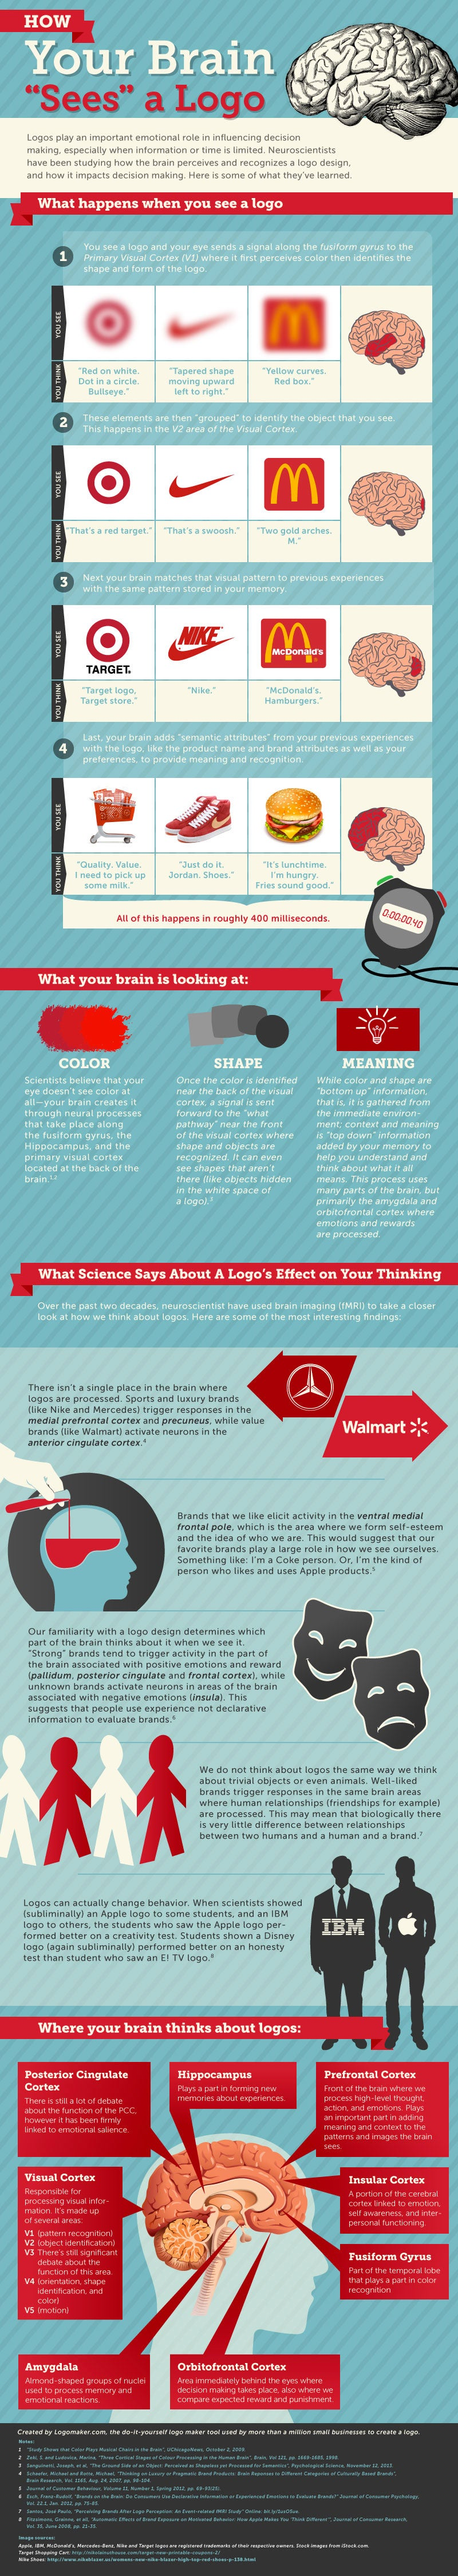 The Incredible Way Your Brain 'Sees' a Logo (Infographic)